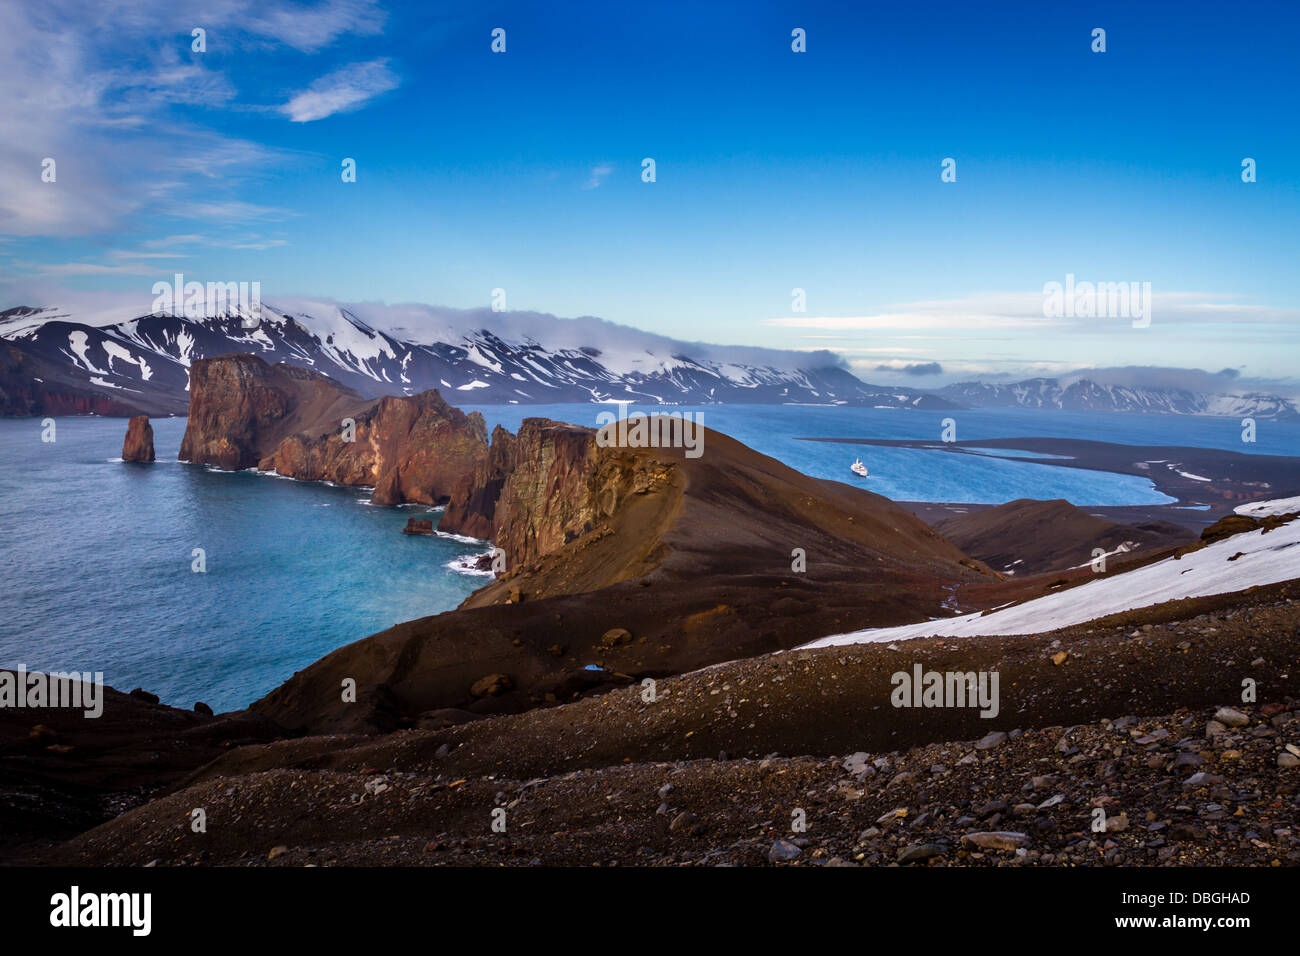 The natural harbour and live volcano of Deception Island, Antarctica - Stock Image